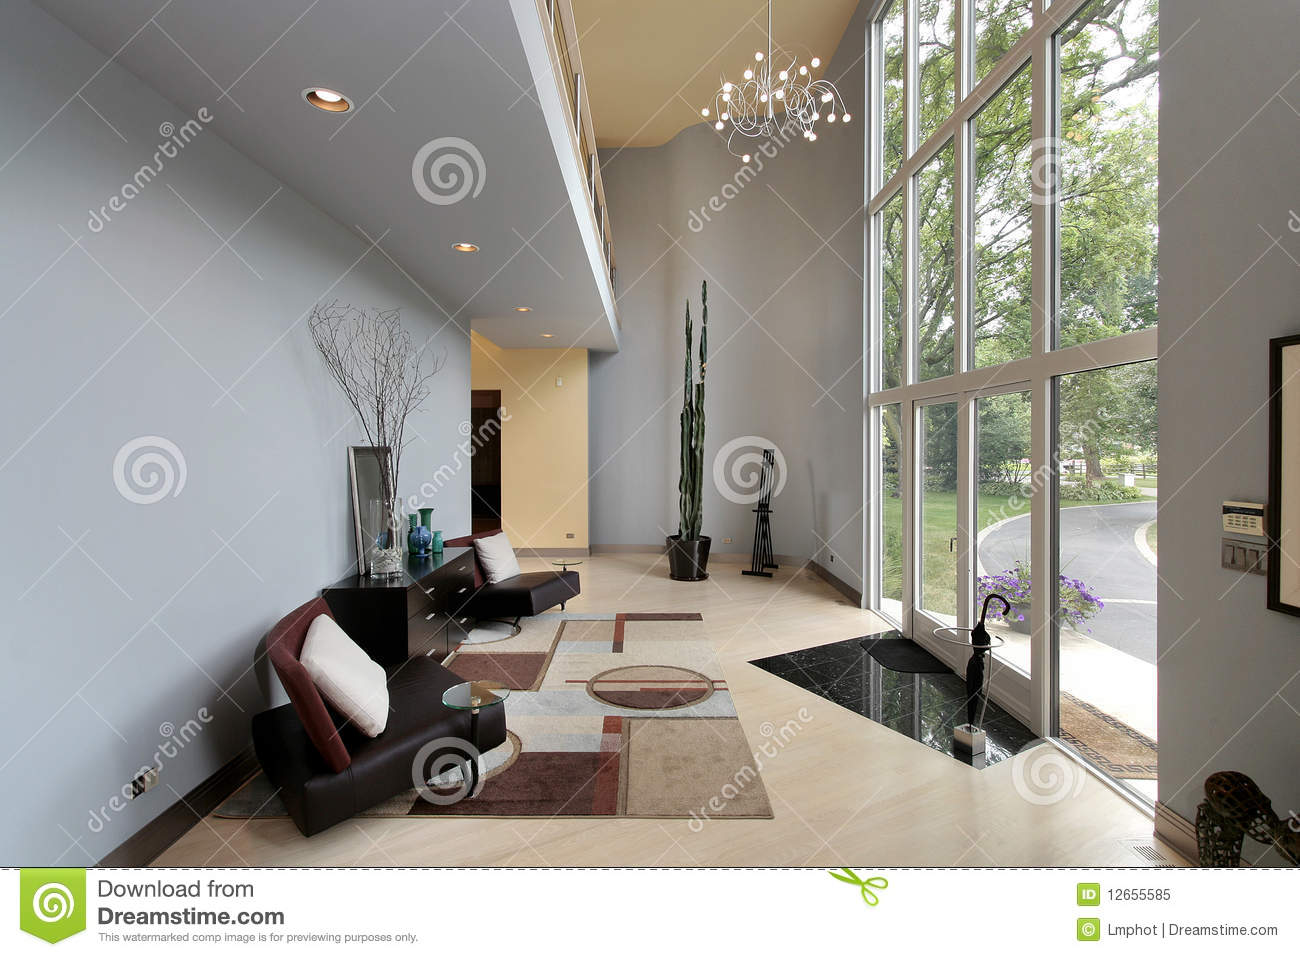 Foyer Window Cost : Modern foyer with two story windows stock image